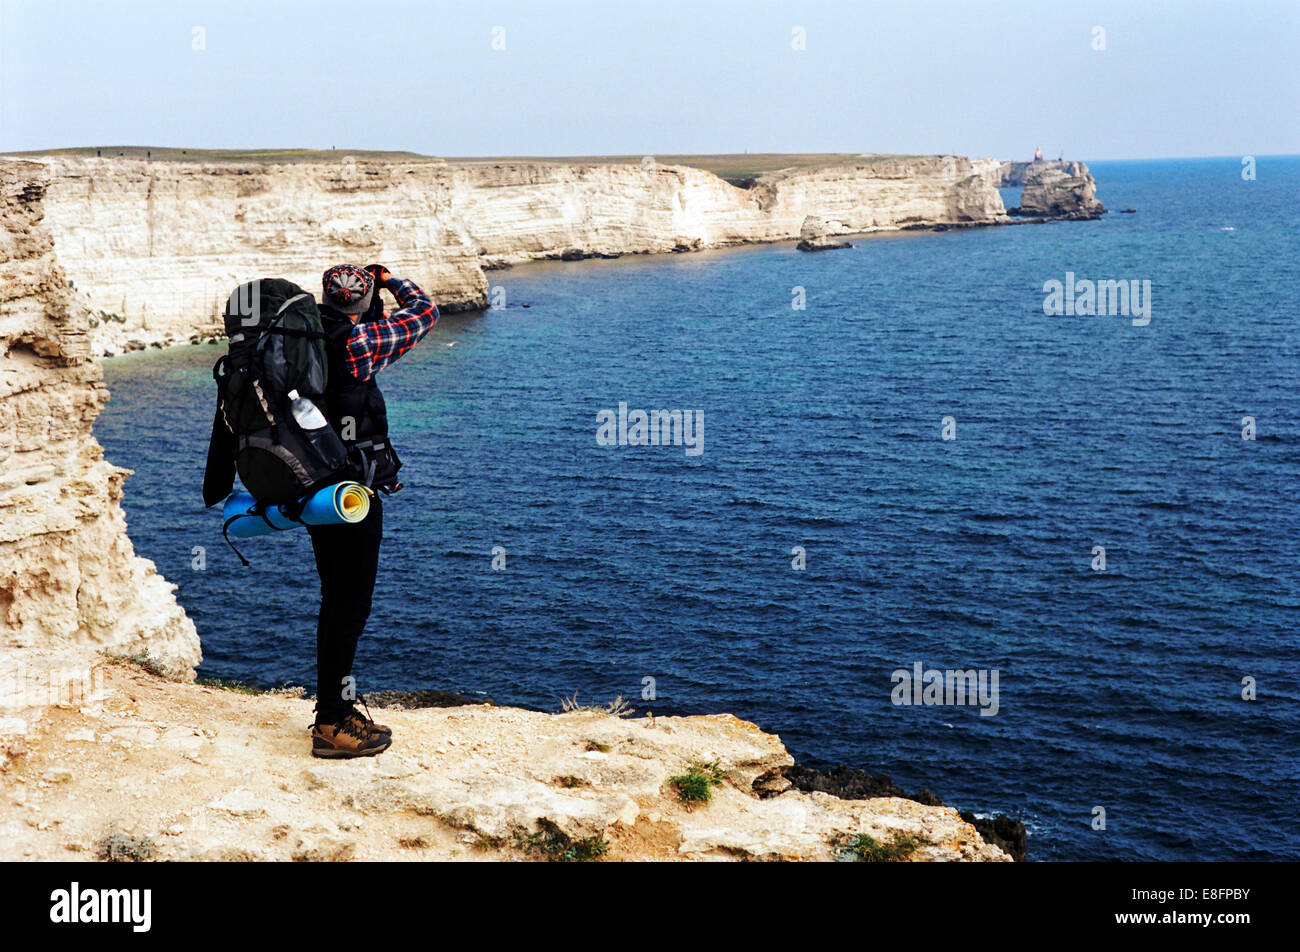 Hiker at cliff edge taking photograph of sea, rear view - Stock Image